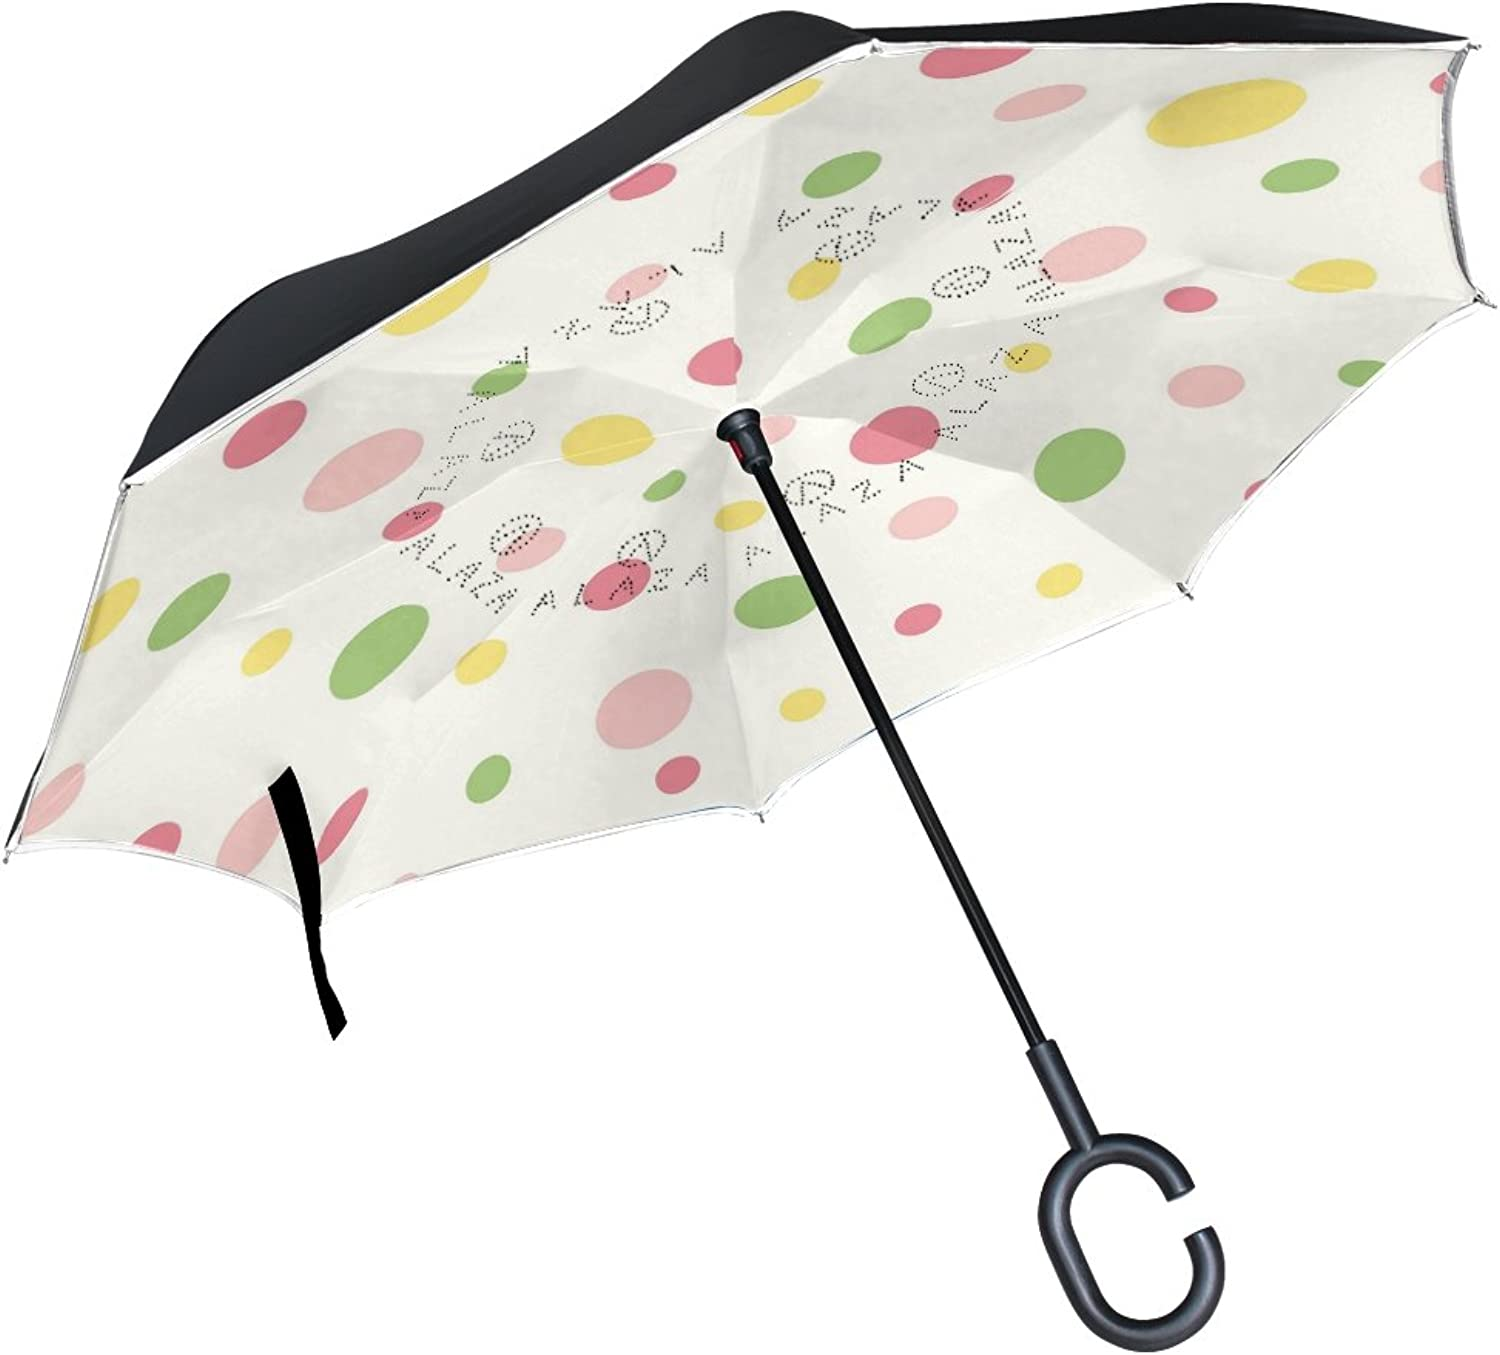 MAPOLO colorful Polka Dots Pattern Ingreened Double Layer Straight Umbrellas InsideOut Reversible Umbrella with CShaped Handle for Rain Sun Car Use